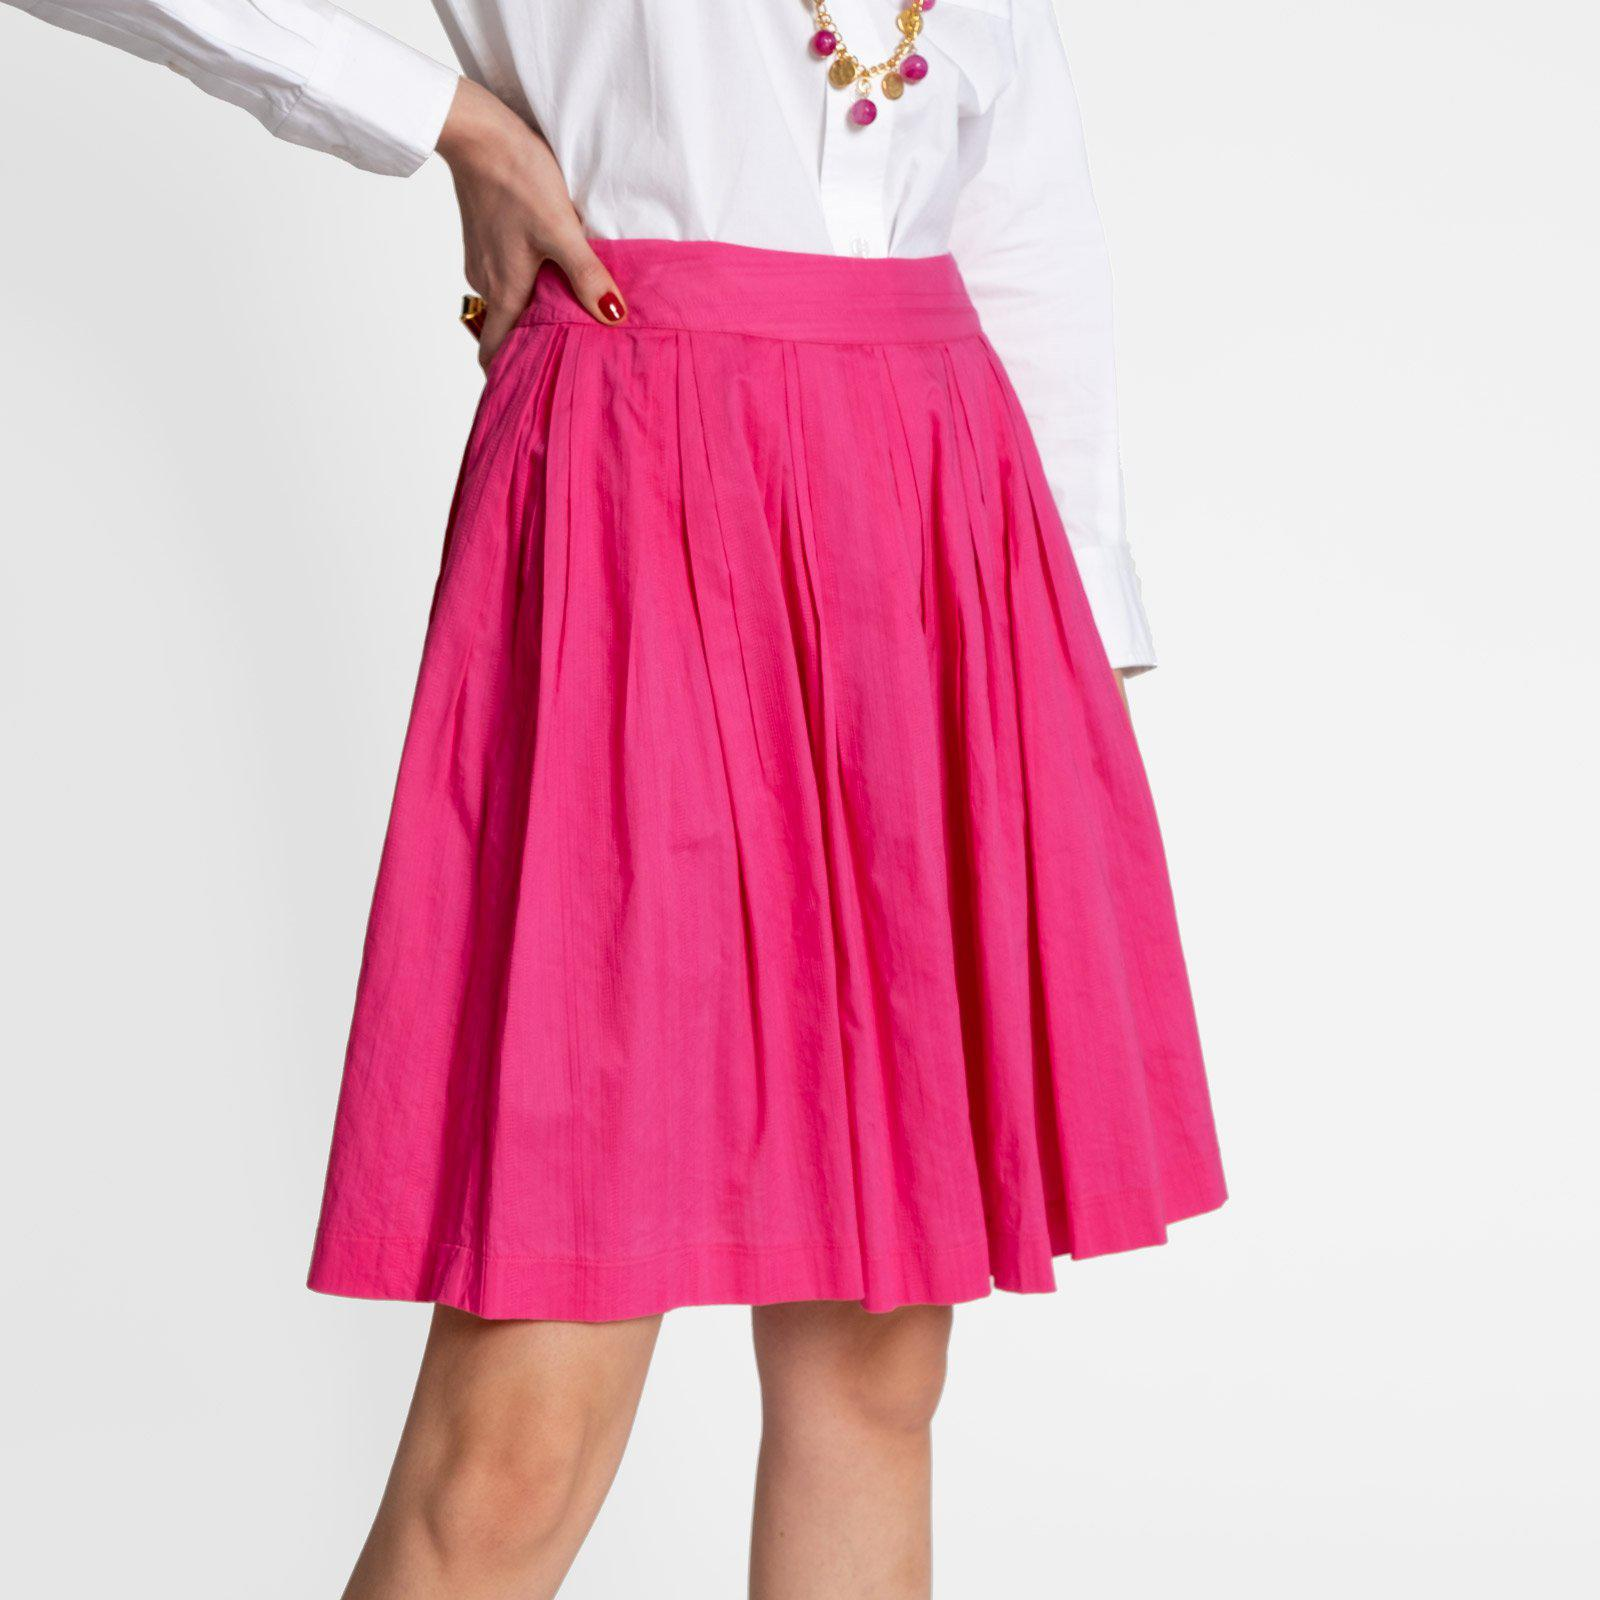 Claire Skirt Pink 2